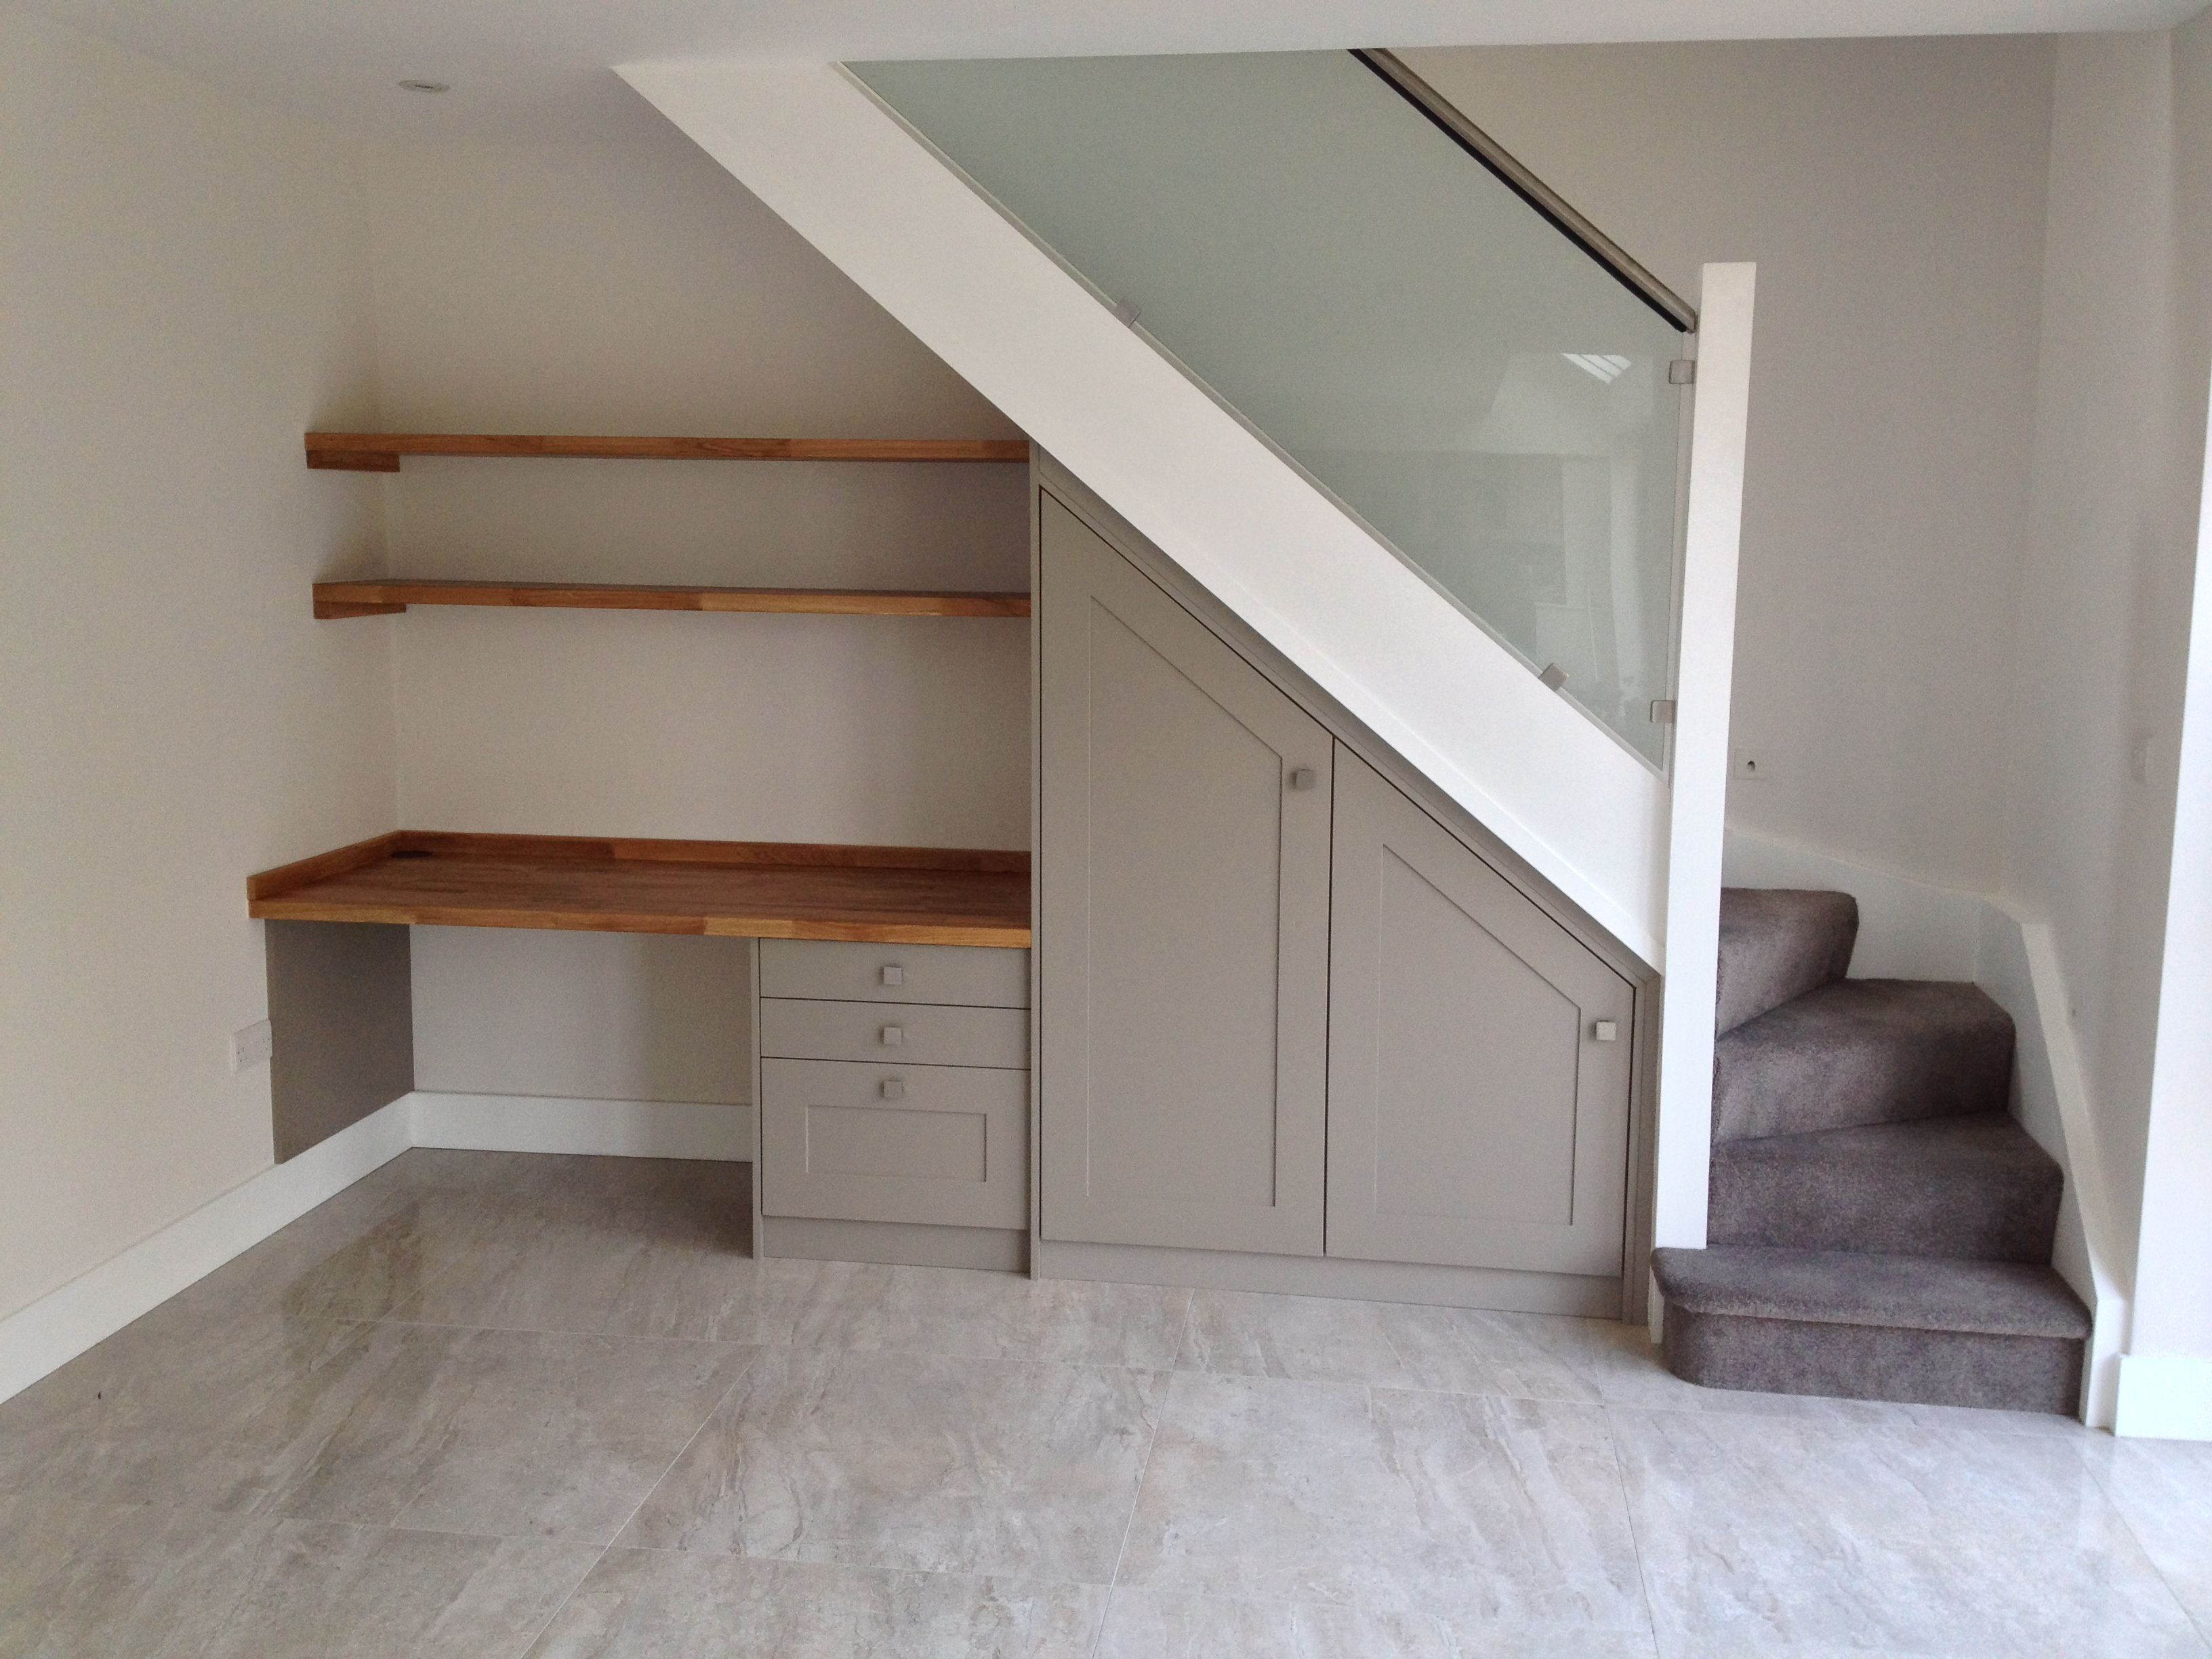 Lighting Basement Washroom Stairs: 10 Under Stair Storage Ideas That Make Your House Look